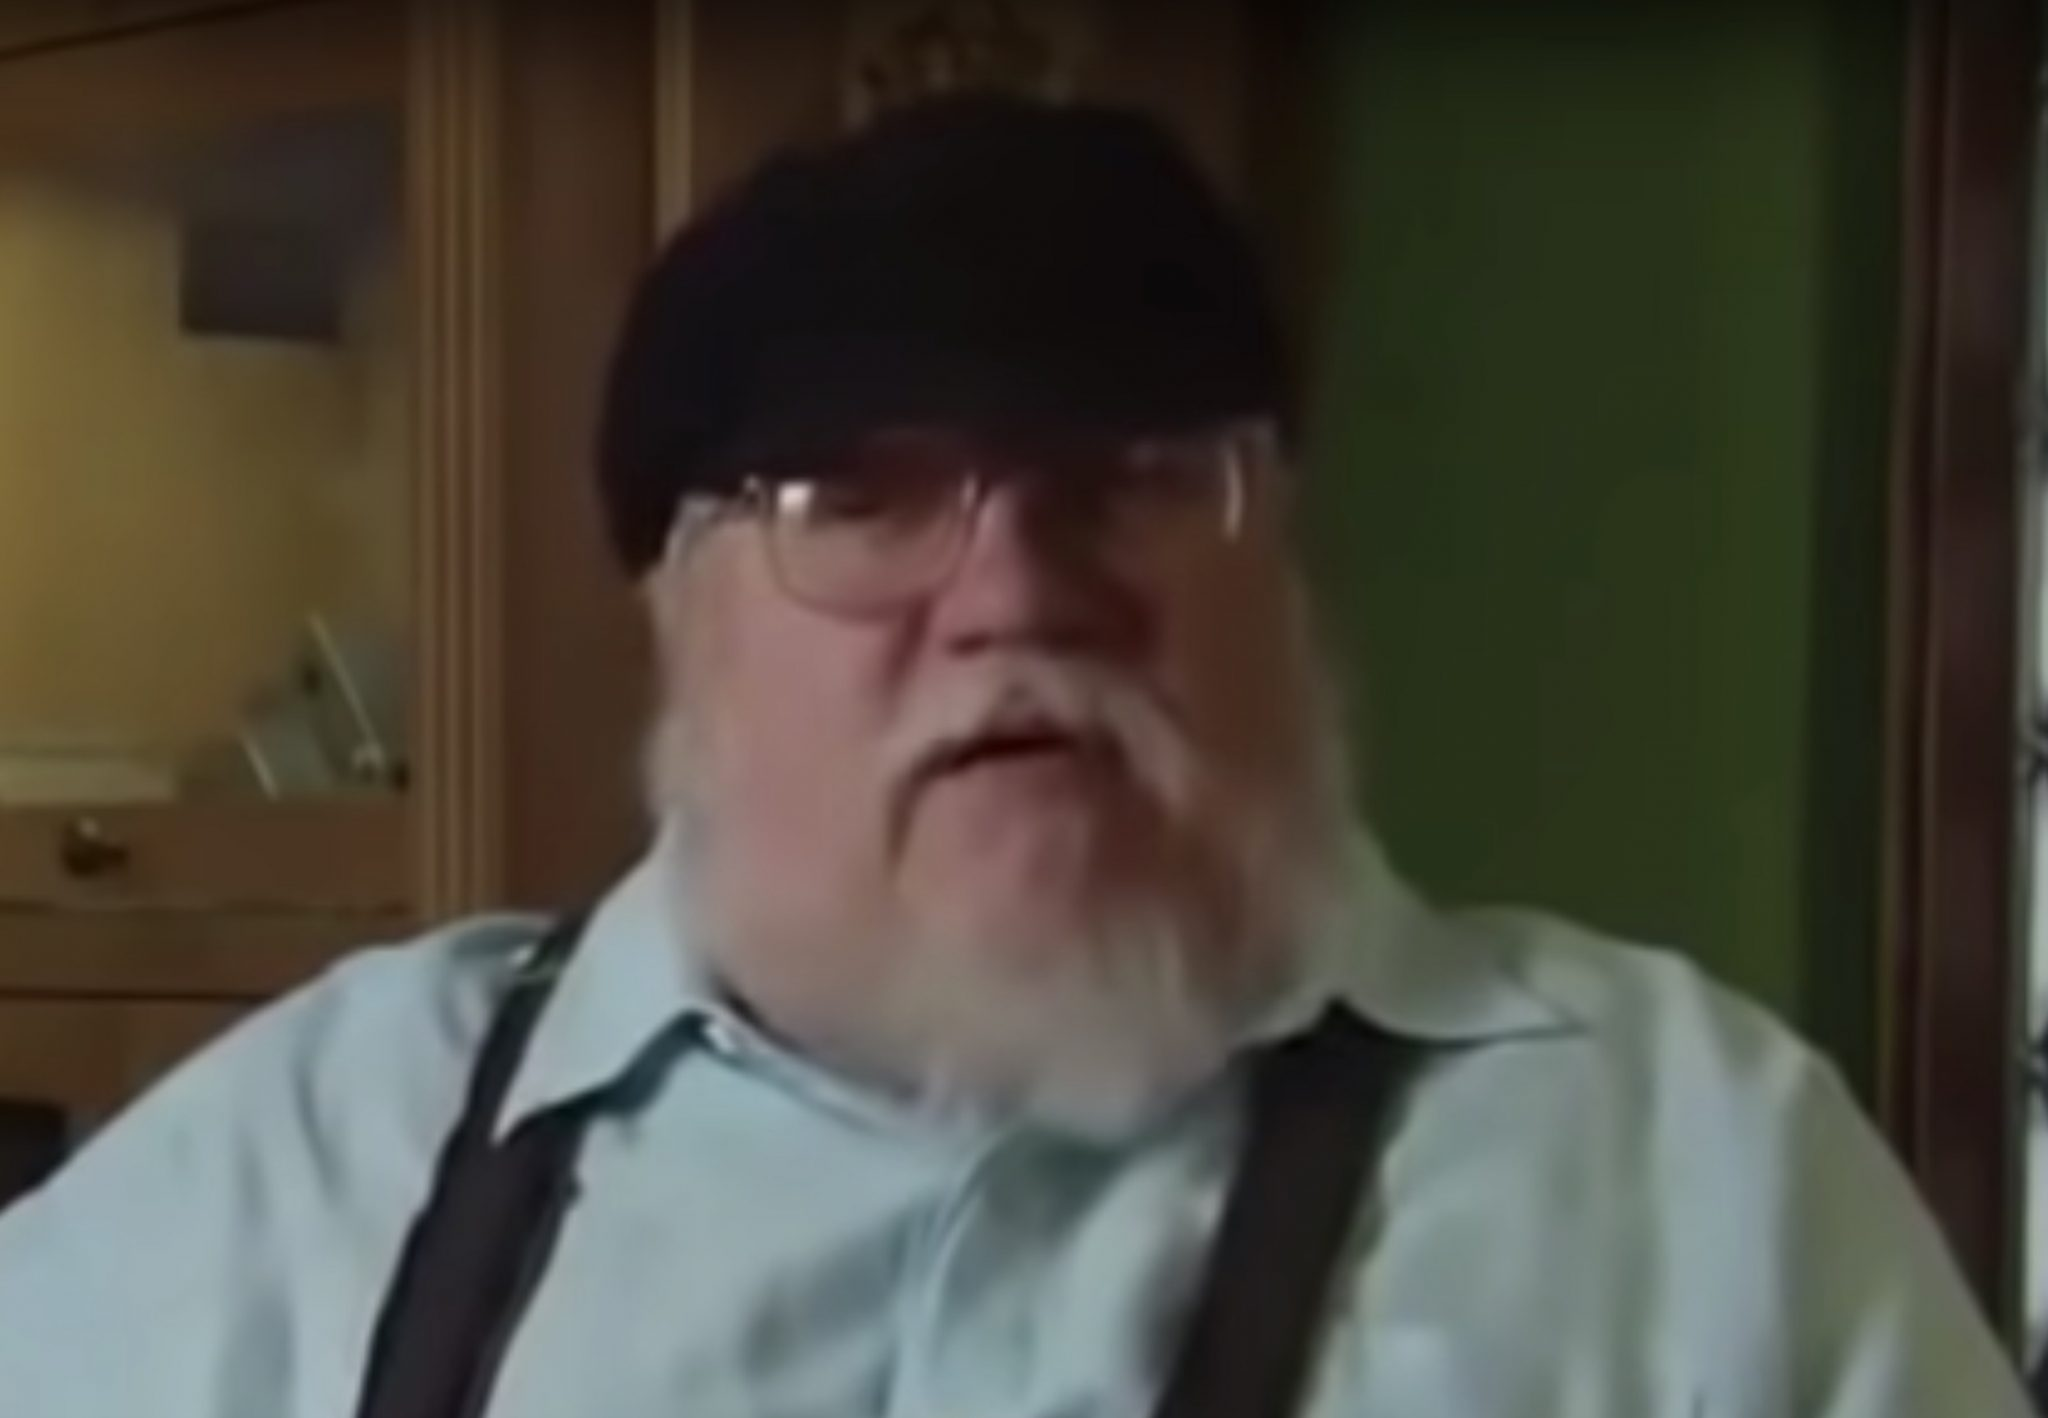 George R.R. Martin, Game of Thrones-https://www.youtube.com/watch?v=Ql0ZPY8lENo